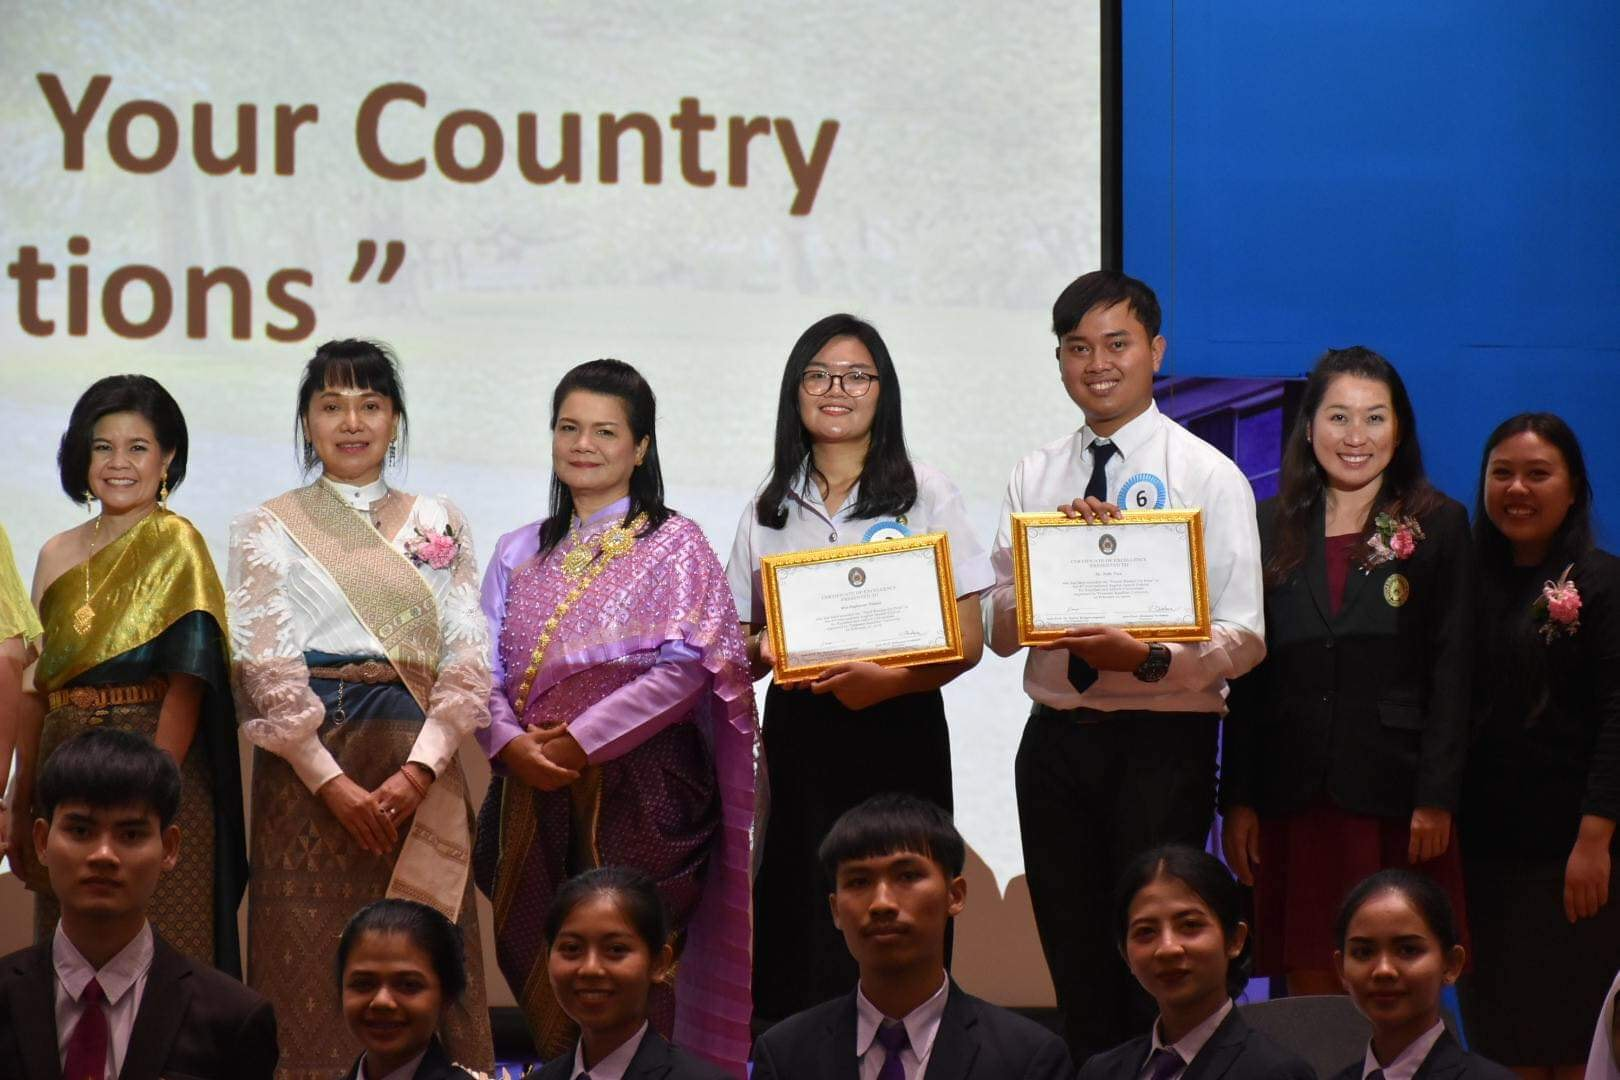 """IACE 2020: The 6th International English Speech Contest """"Recent Environment Issues in Your Country and Their Practical Solutions"""""""